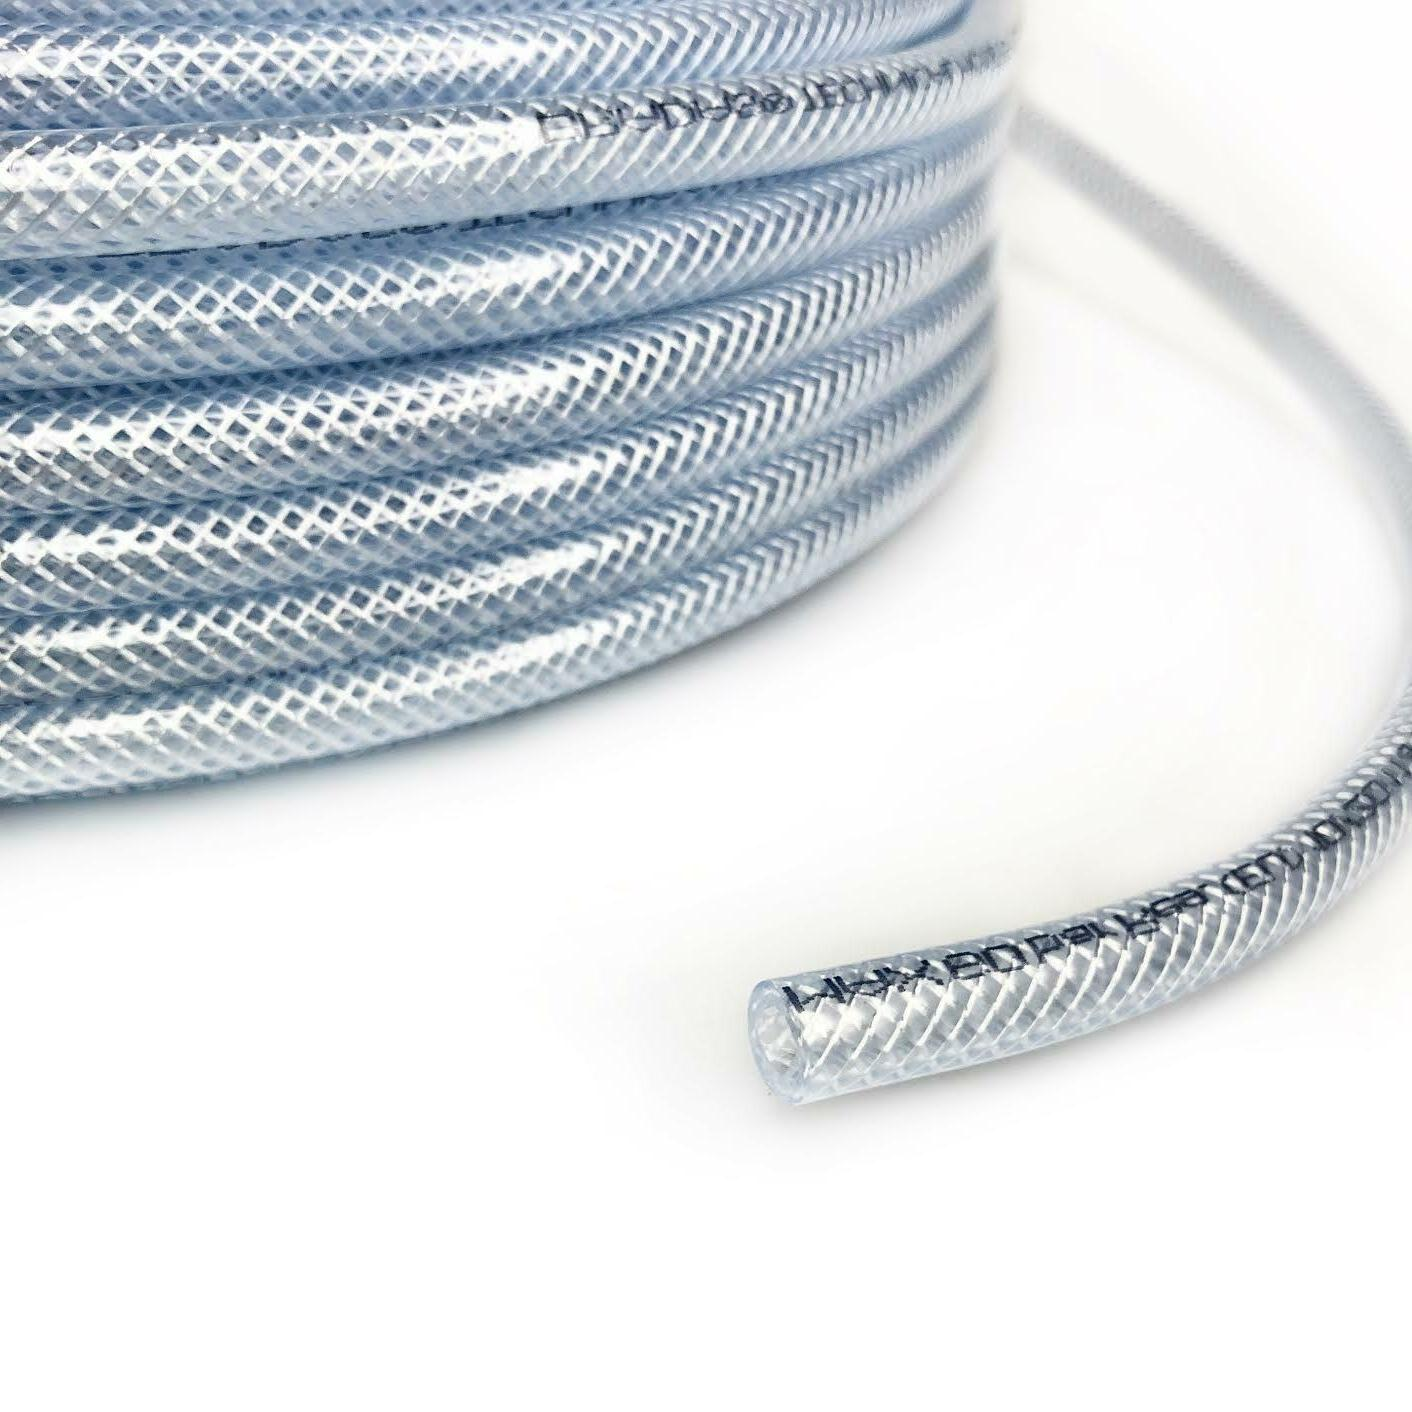 braided clear pvc hose pipe tubing food